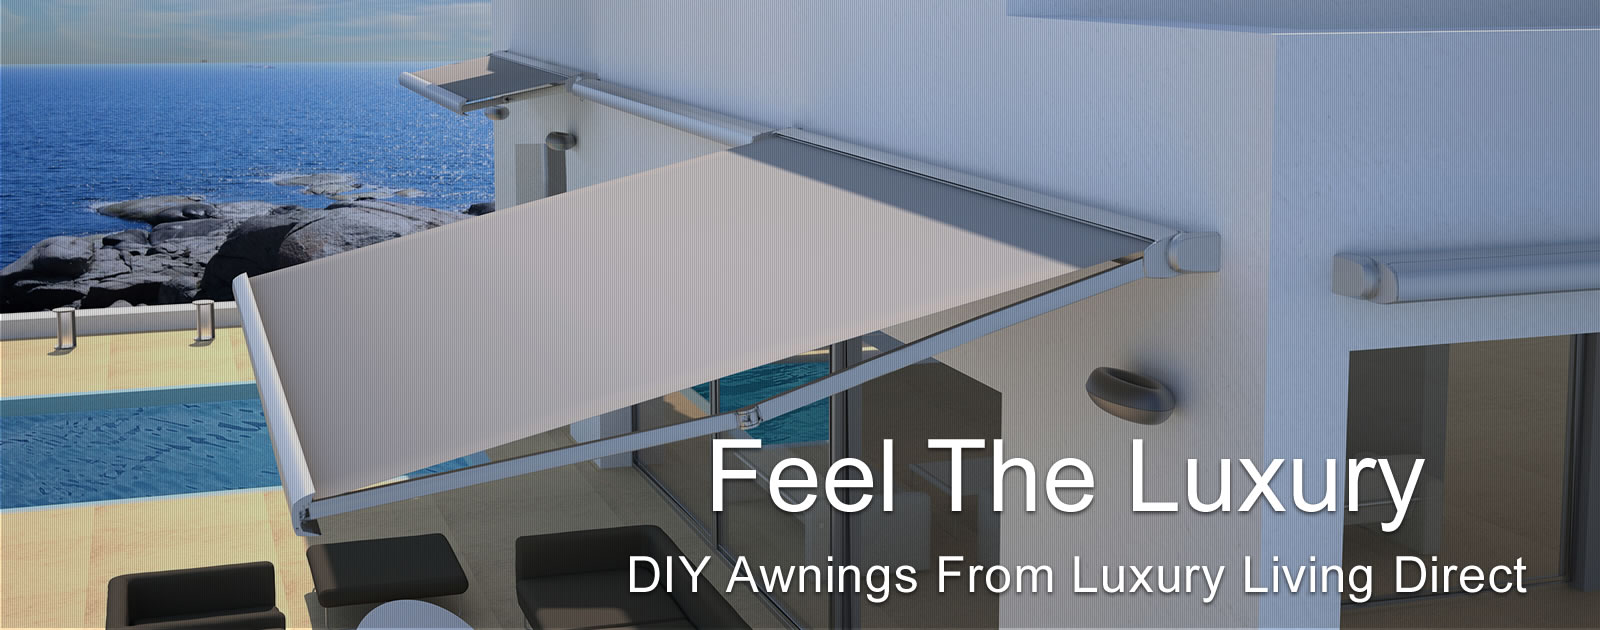 DIY Awnings From Luxury Living Direct